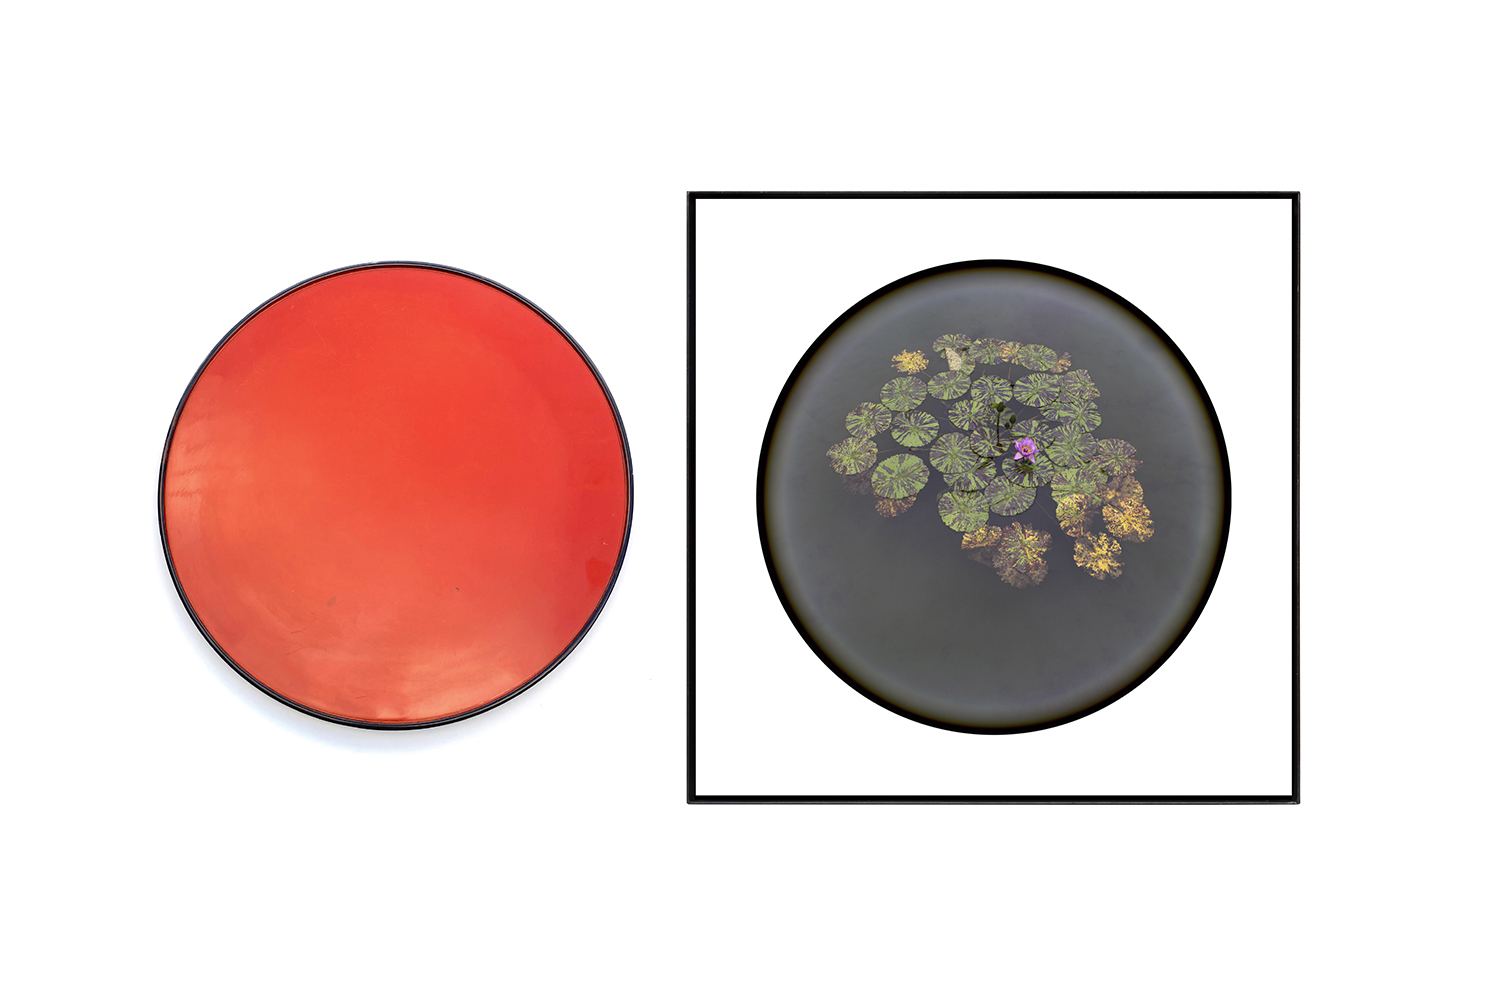 盆花/Bon flower|Lambda silver halide print, acrylic plate, iron, tray|photo: 450 x 440 x 25mm, tray:355 x 355 x 20 mm|2019<br>¥150,000-280,000